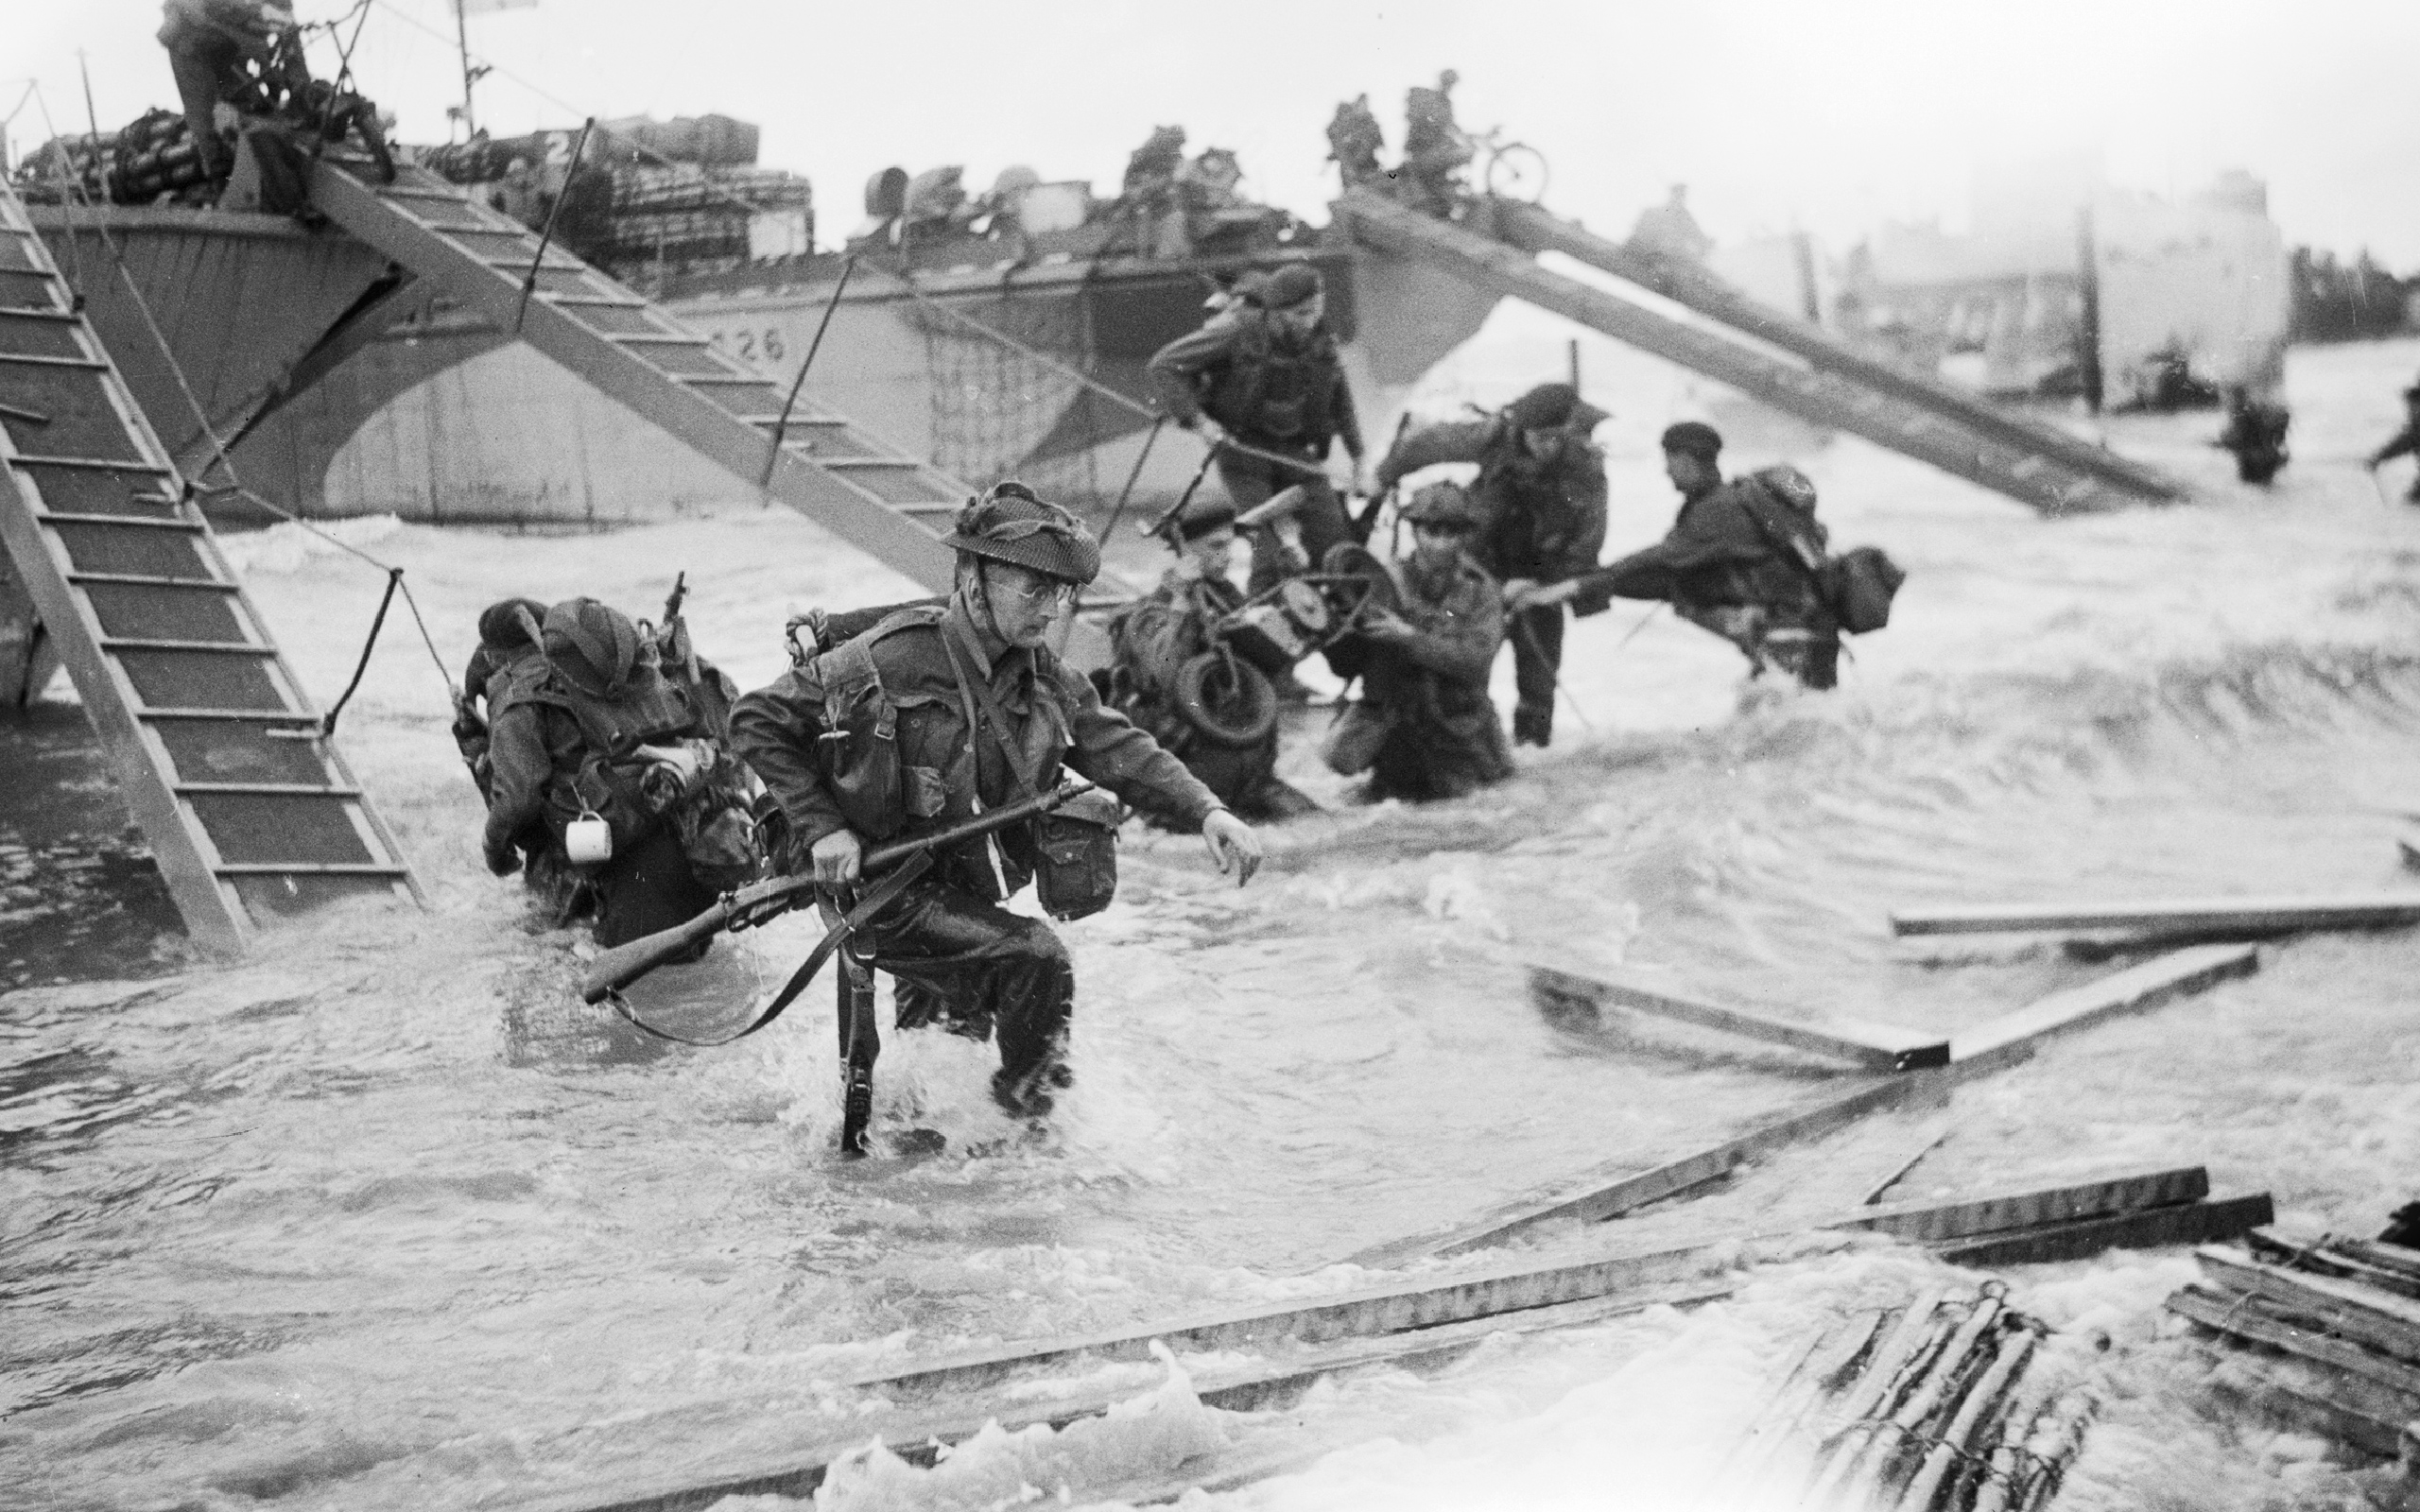 Commandos of HQ 4th Special Service Brigade, coming ashore from LCI(S) landing craft on Nan Red beach, Juno area, at St Aubin-sur-Mer, 6 June 1944.